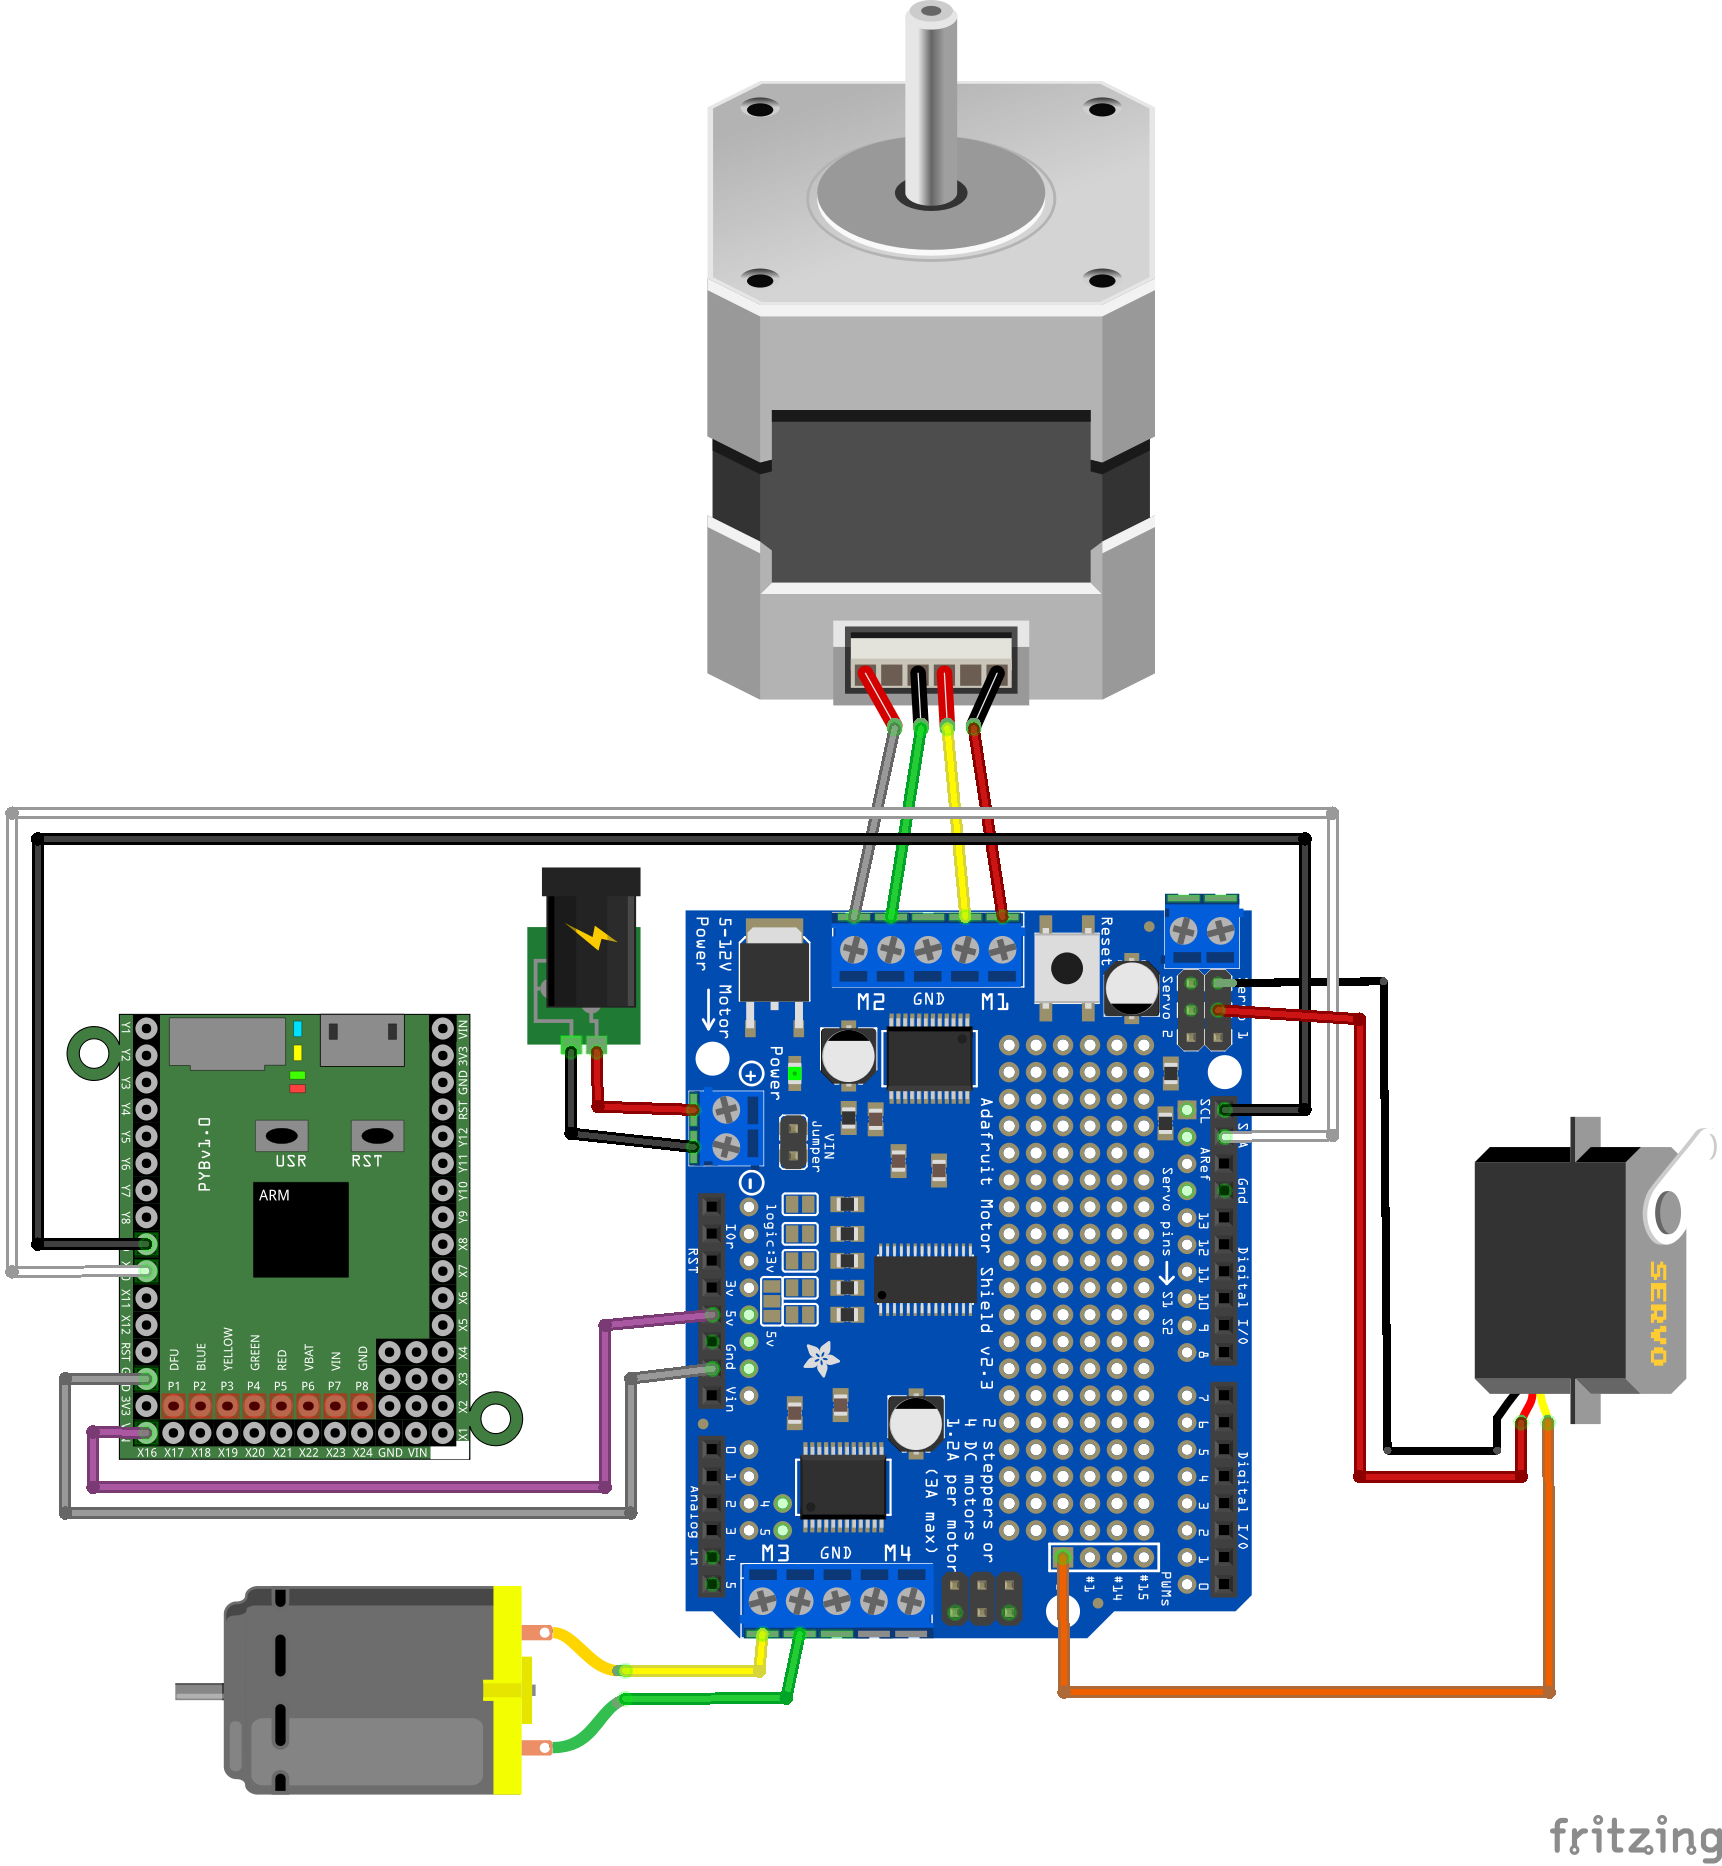 With small motors, you can use the 5V power supply of the pyboard by installing the VIN jumper on the shield and ...